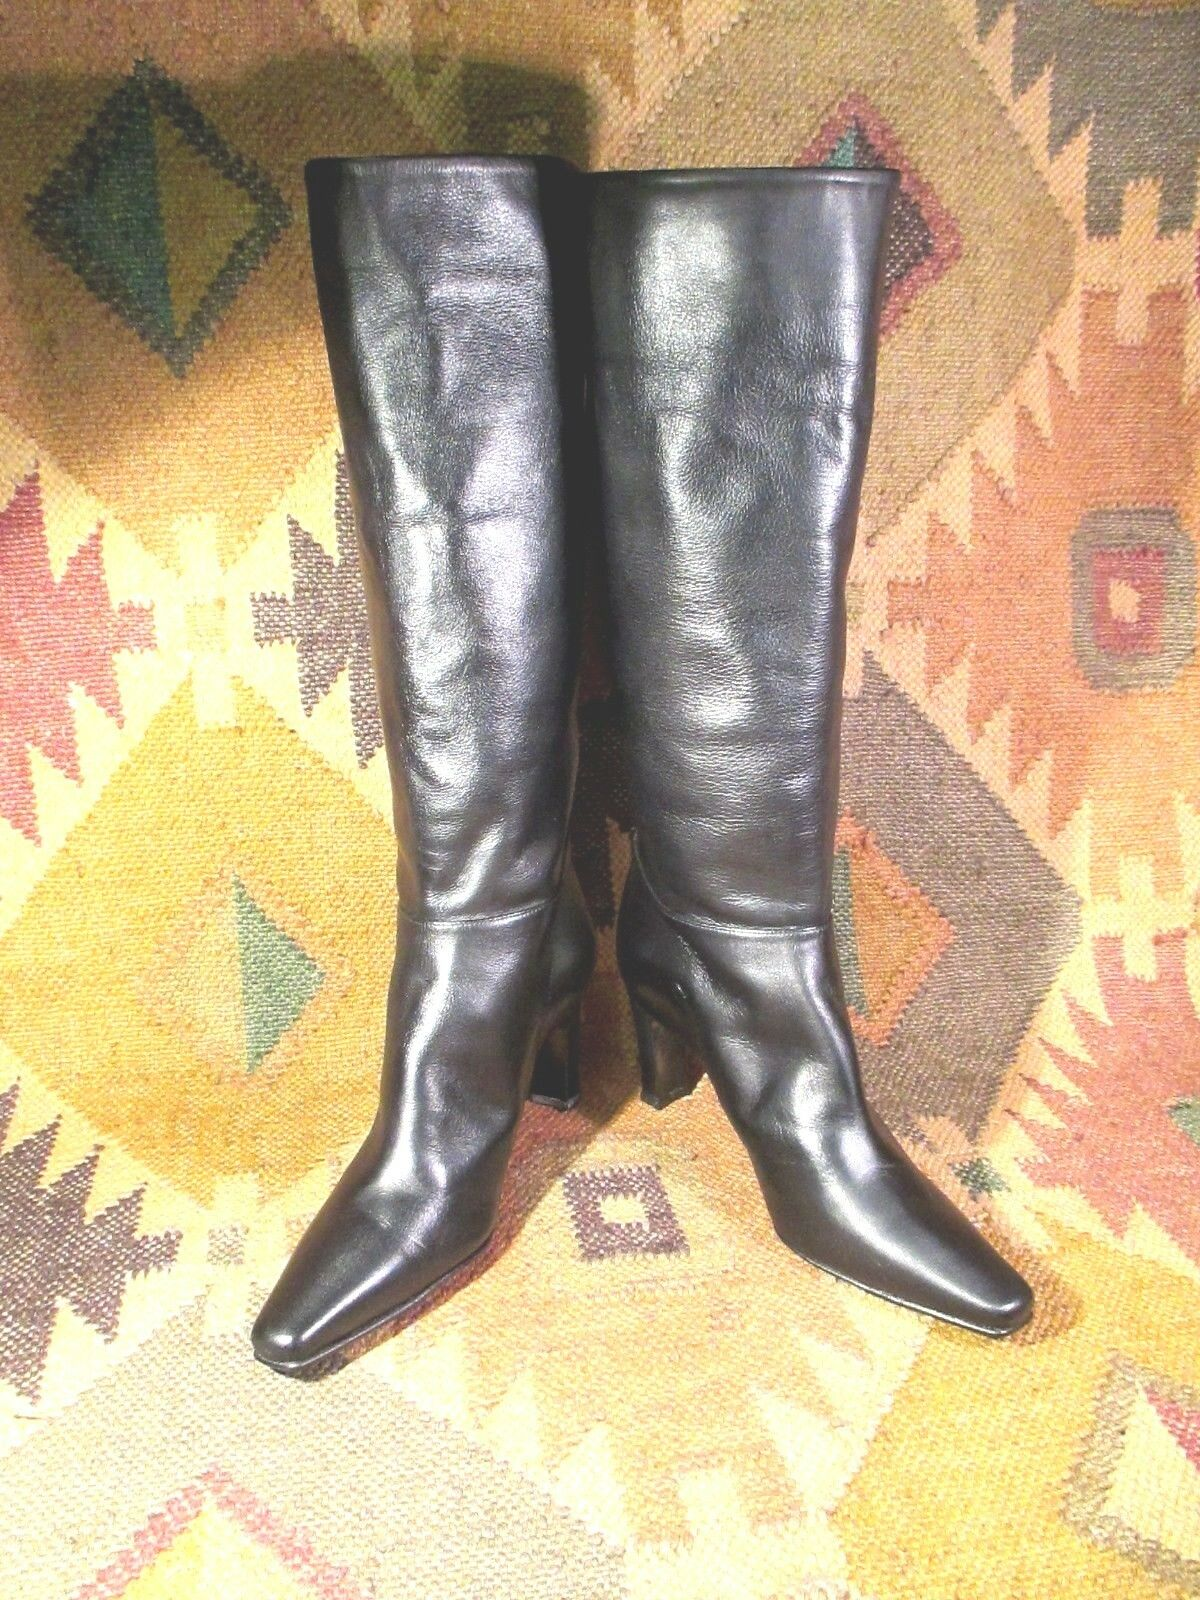 distribuzione globale TIMOTHY TIMOTHY TIMOTHY HITSMAN nero Real Leather stivali Heels Dimensione 6 M made in Spain  acquista online